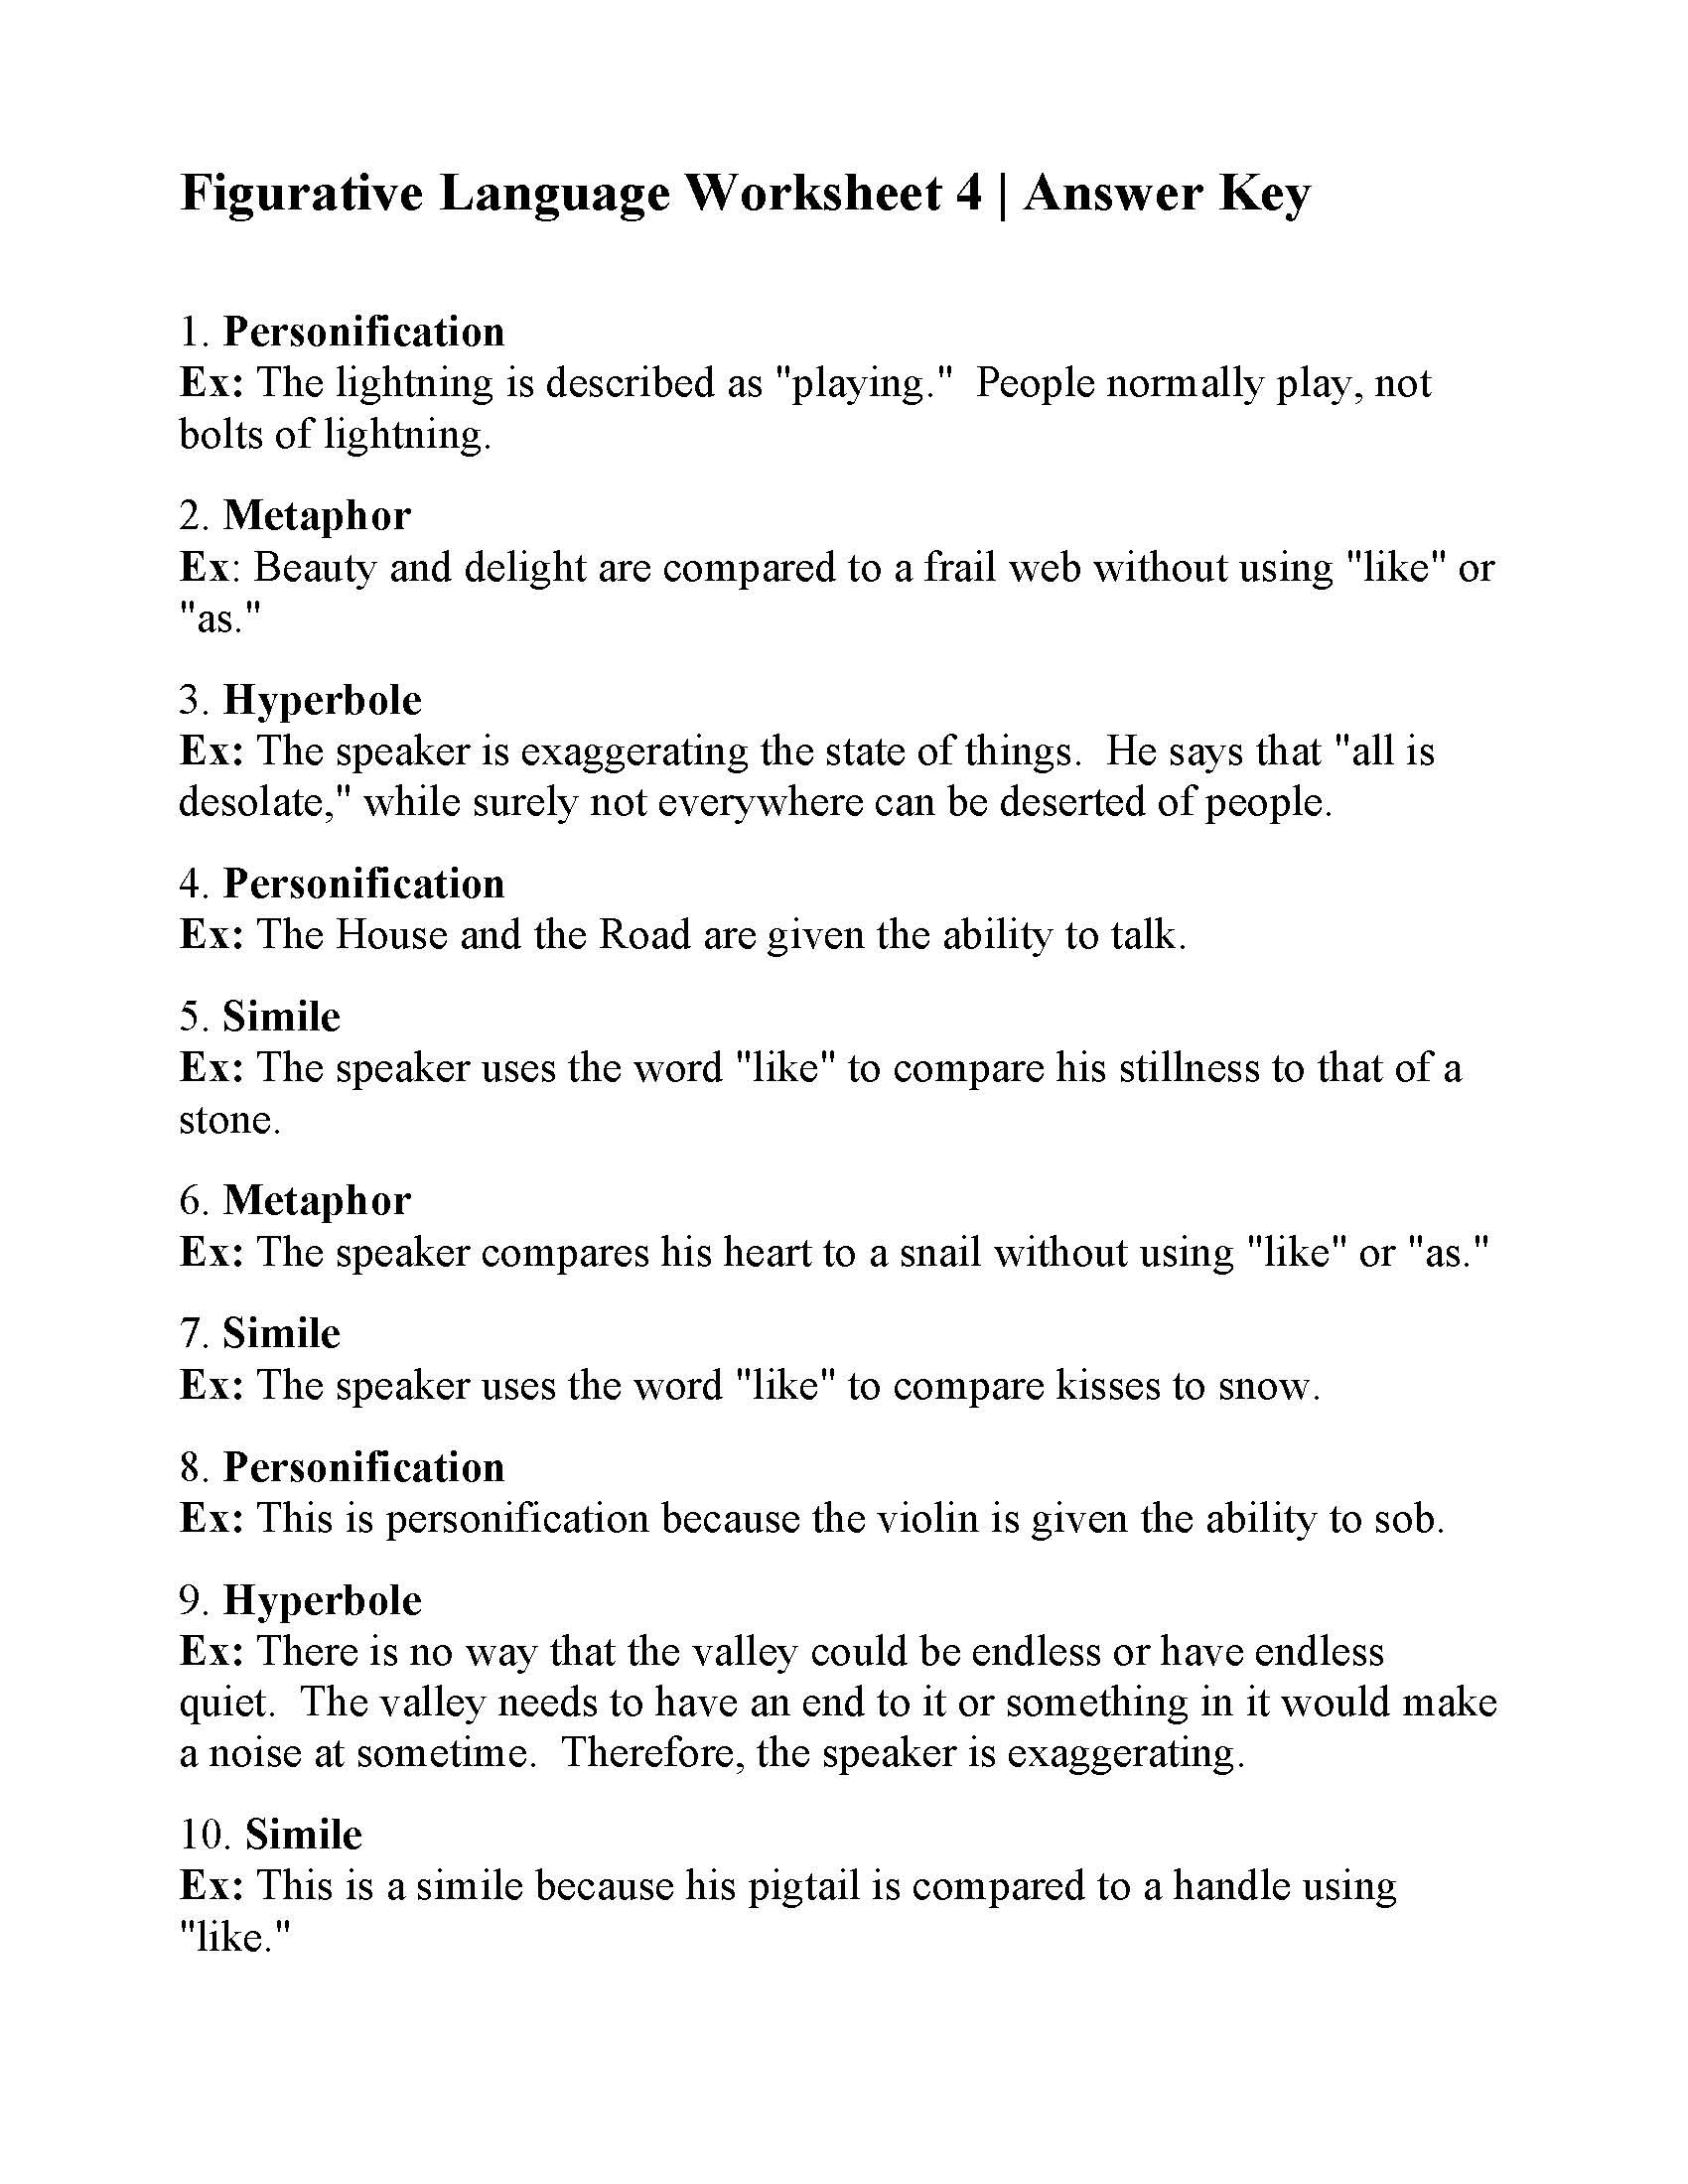 Figurative Language Worksheet 5th Grade Christmas Times Tables Coloring Place and Value Worksheets